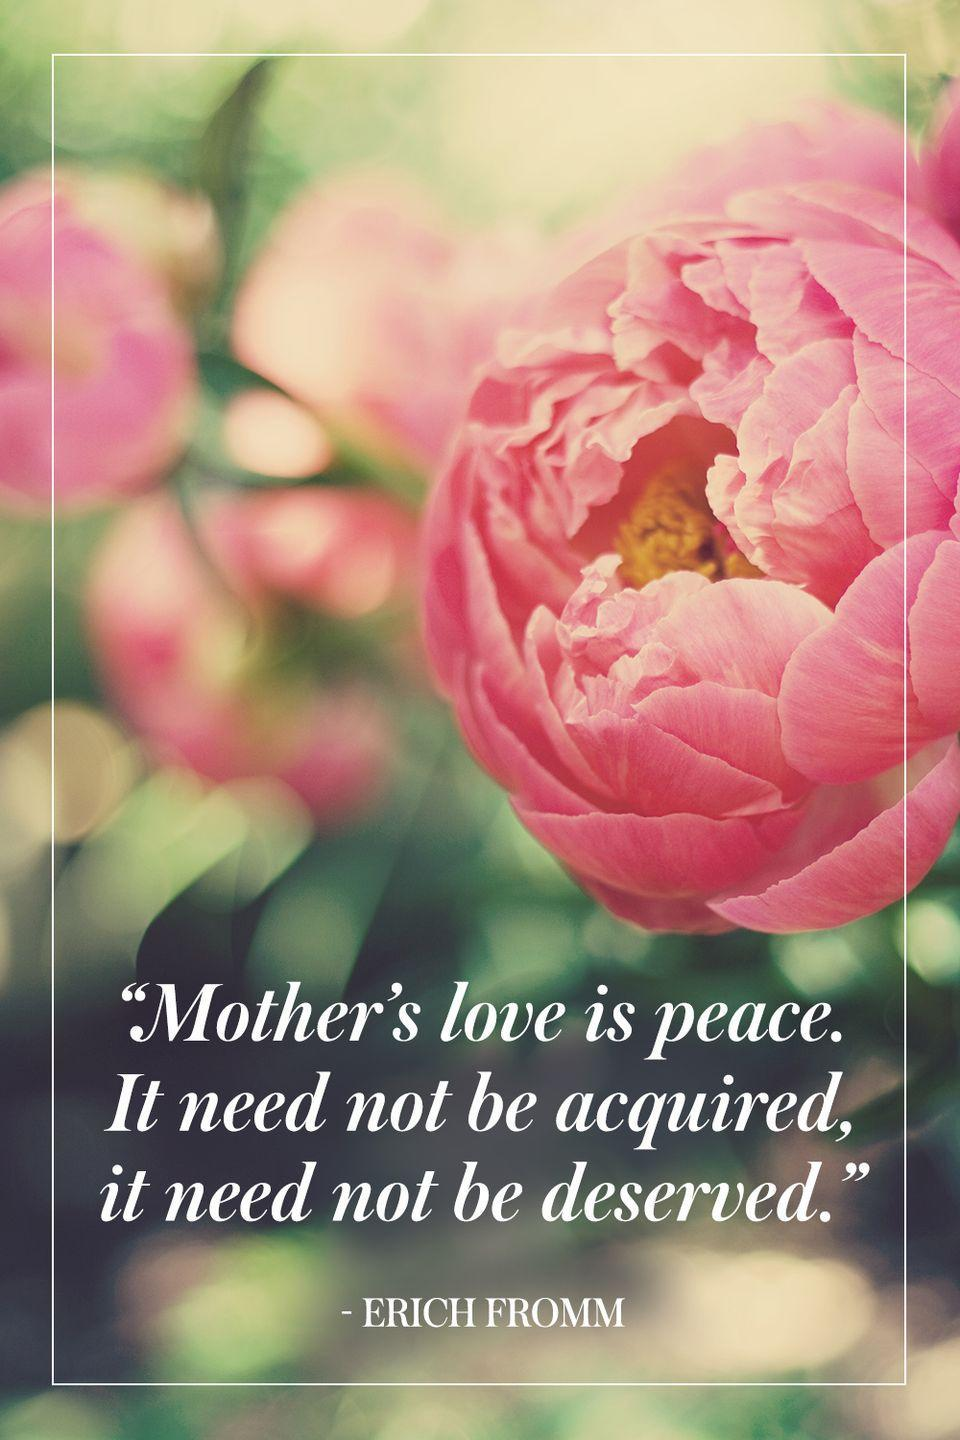 """<p>""""Mother's love is peace. It need not be acquired, it need not be deserved."""" </p><p>- Erich Fromm</p>"""